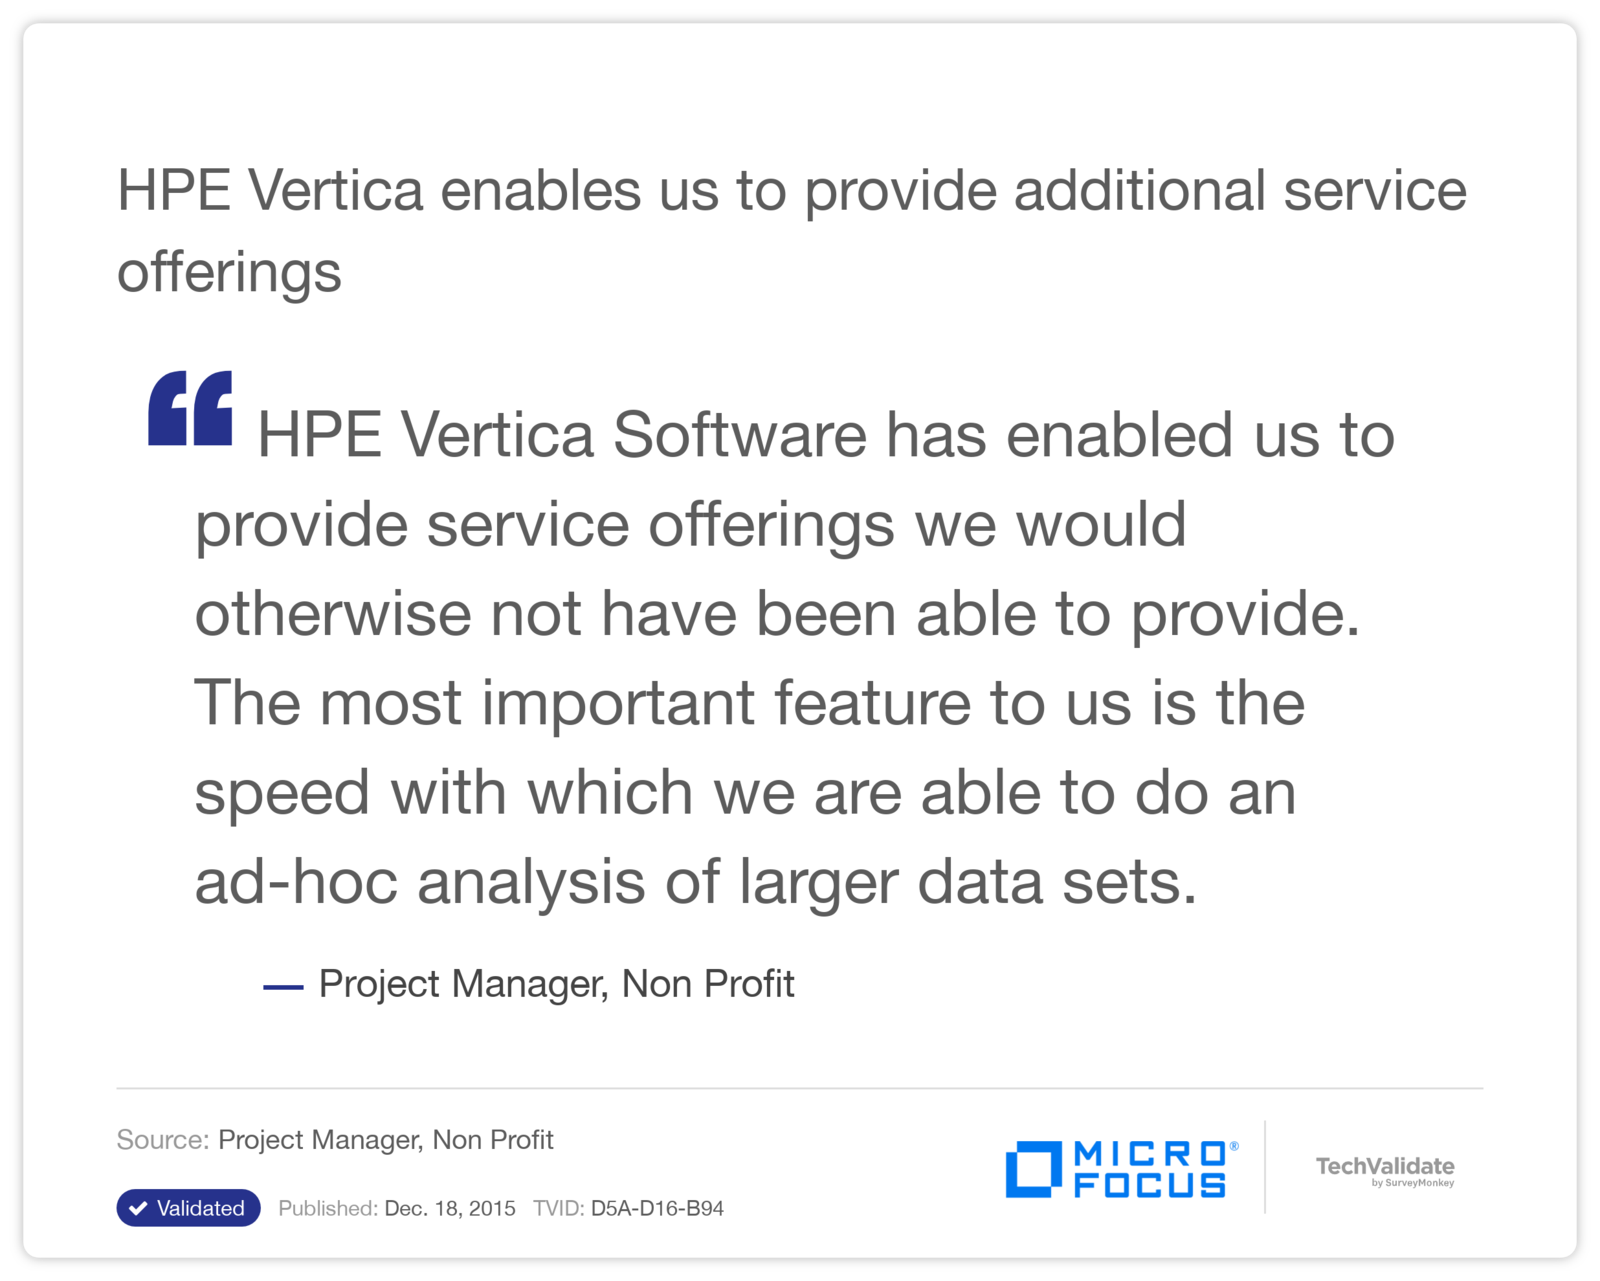 HPE Vertica enables us to provide additional service offerings